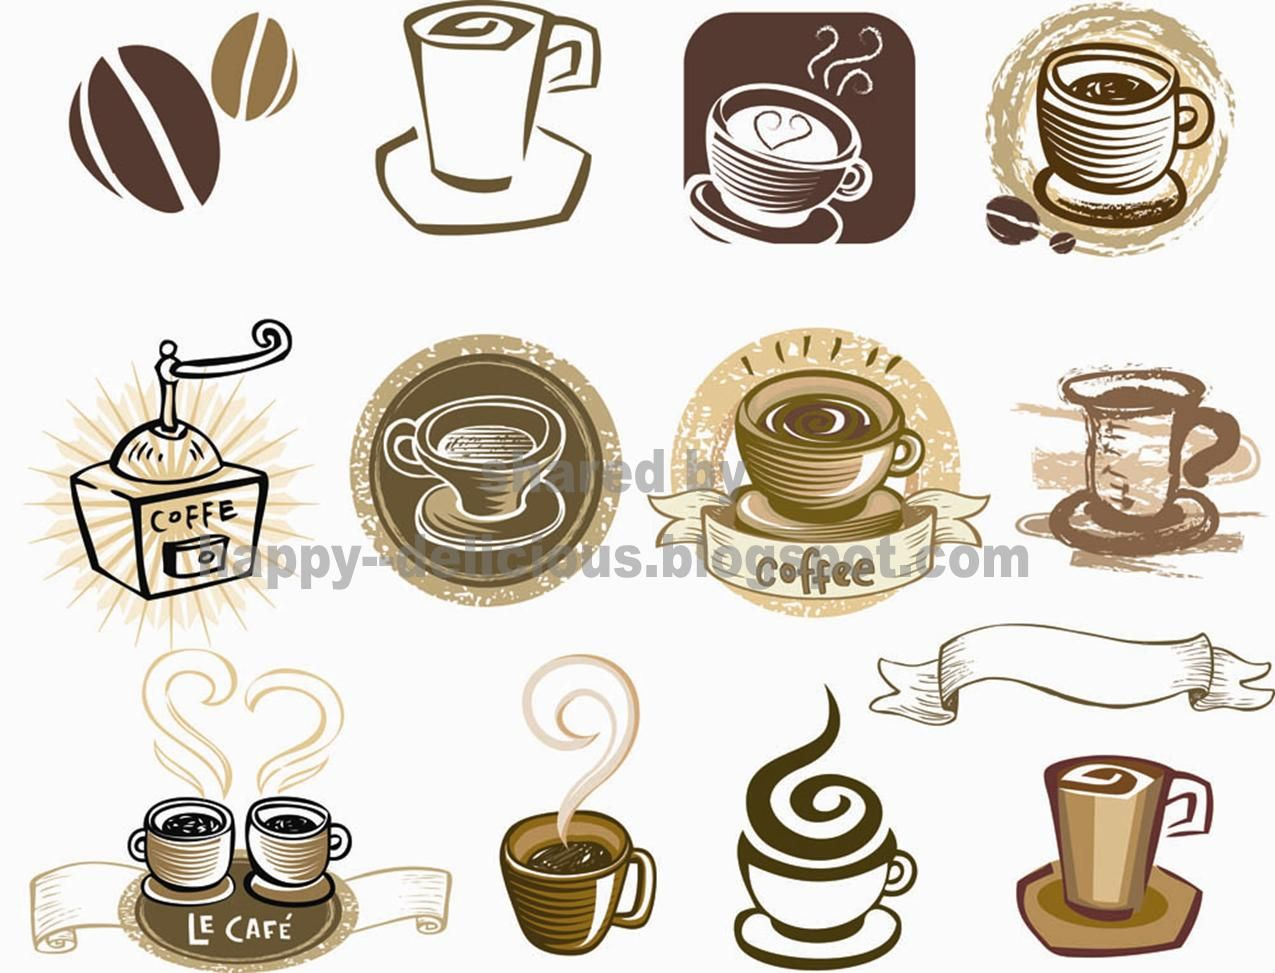 Coffee Bean Clip Art cafe, coffee, cappuccino, espresso